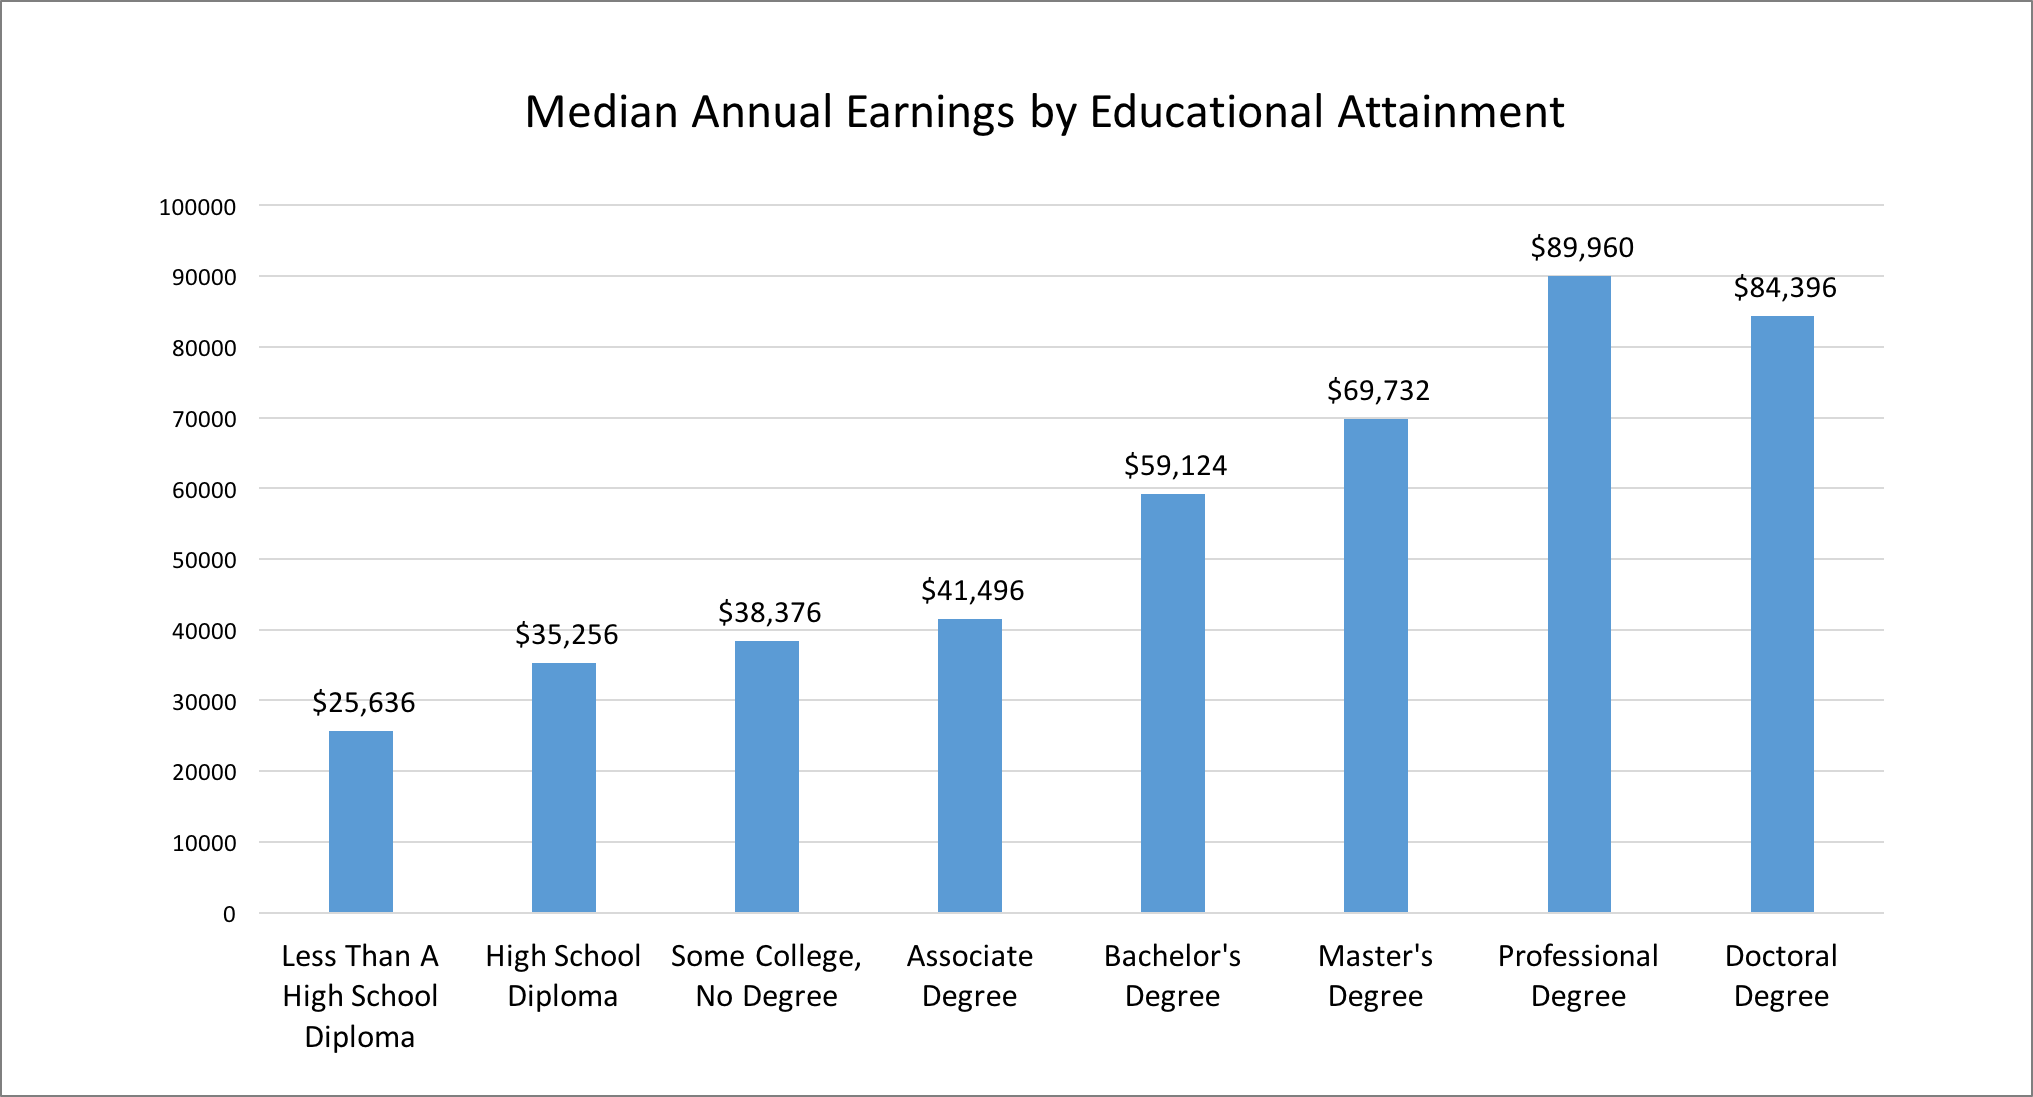 Median Annual Earnings by Educational Attainment